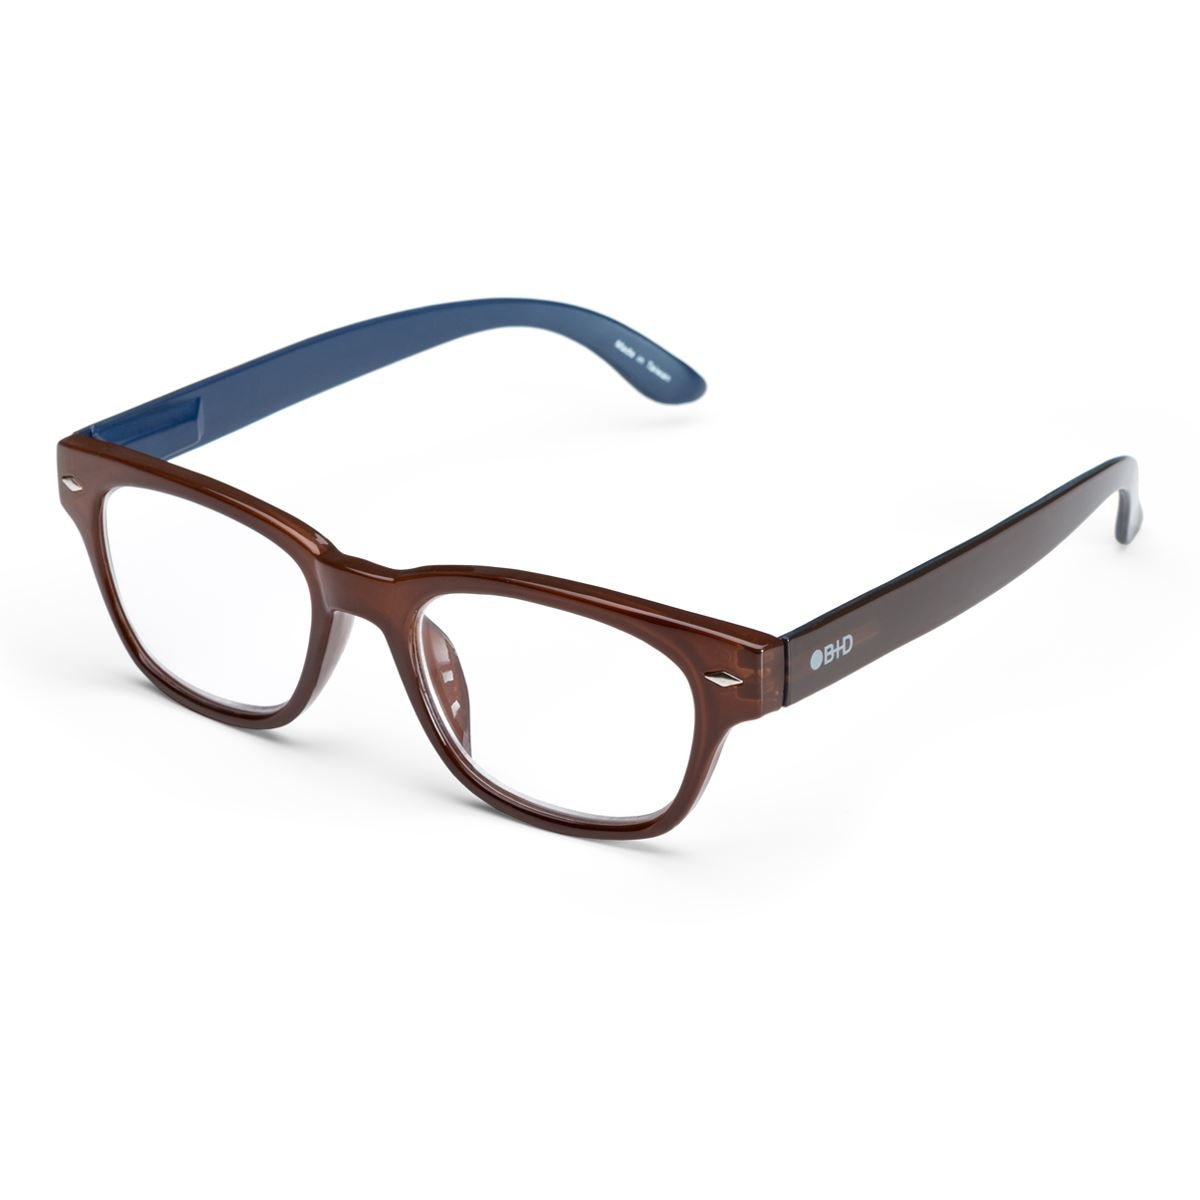 Lentes de lectura pregraduados super bold brown +2.00  - Sanborns